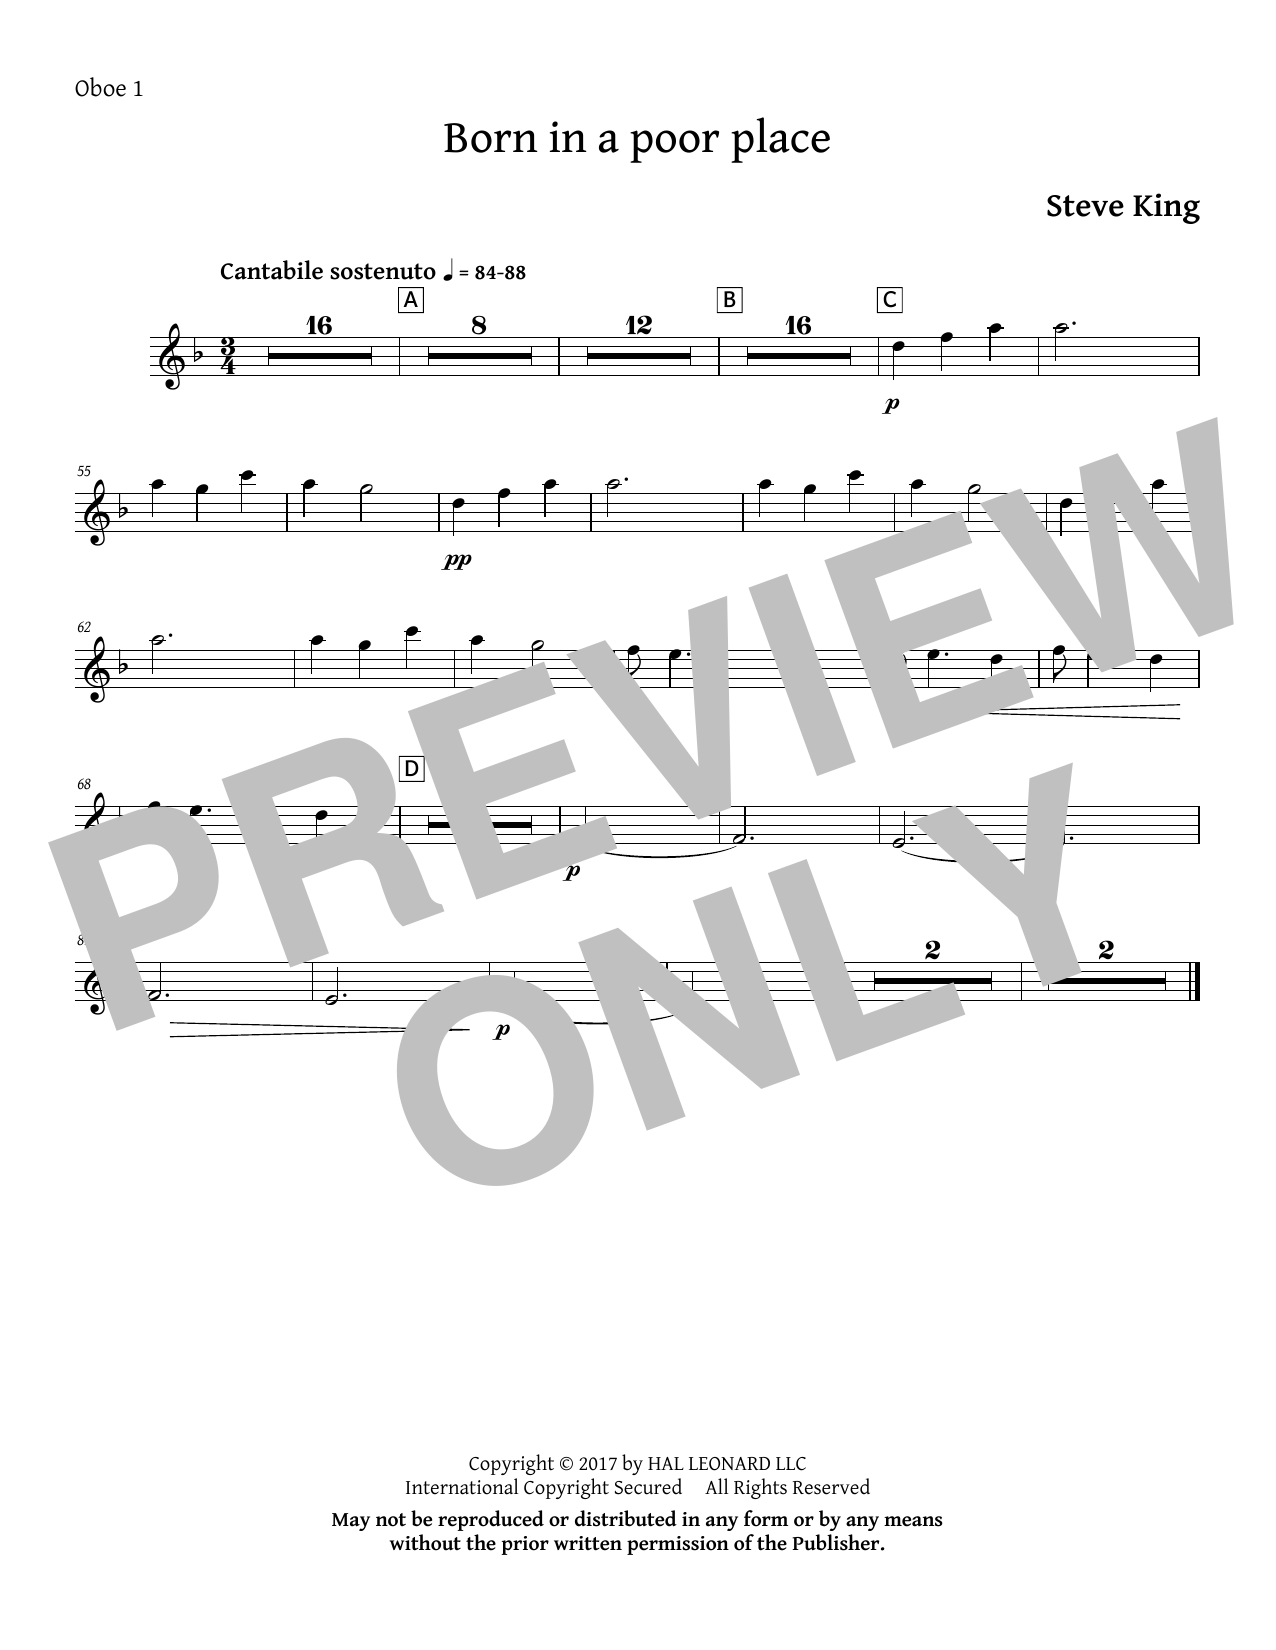 Born in a Poor Place - Oboe 1 Sheet Music